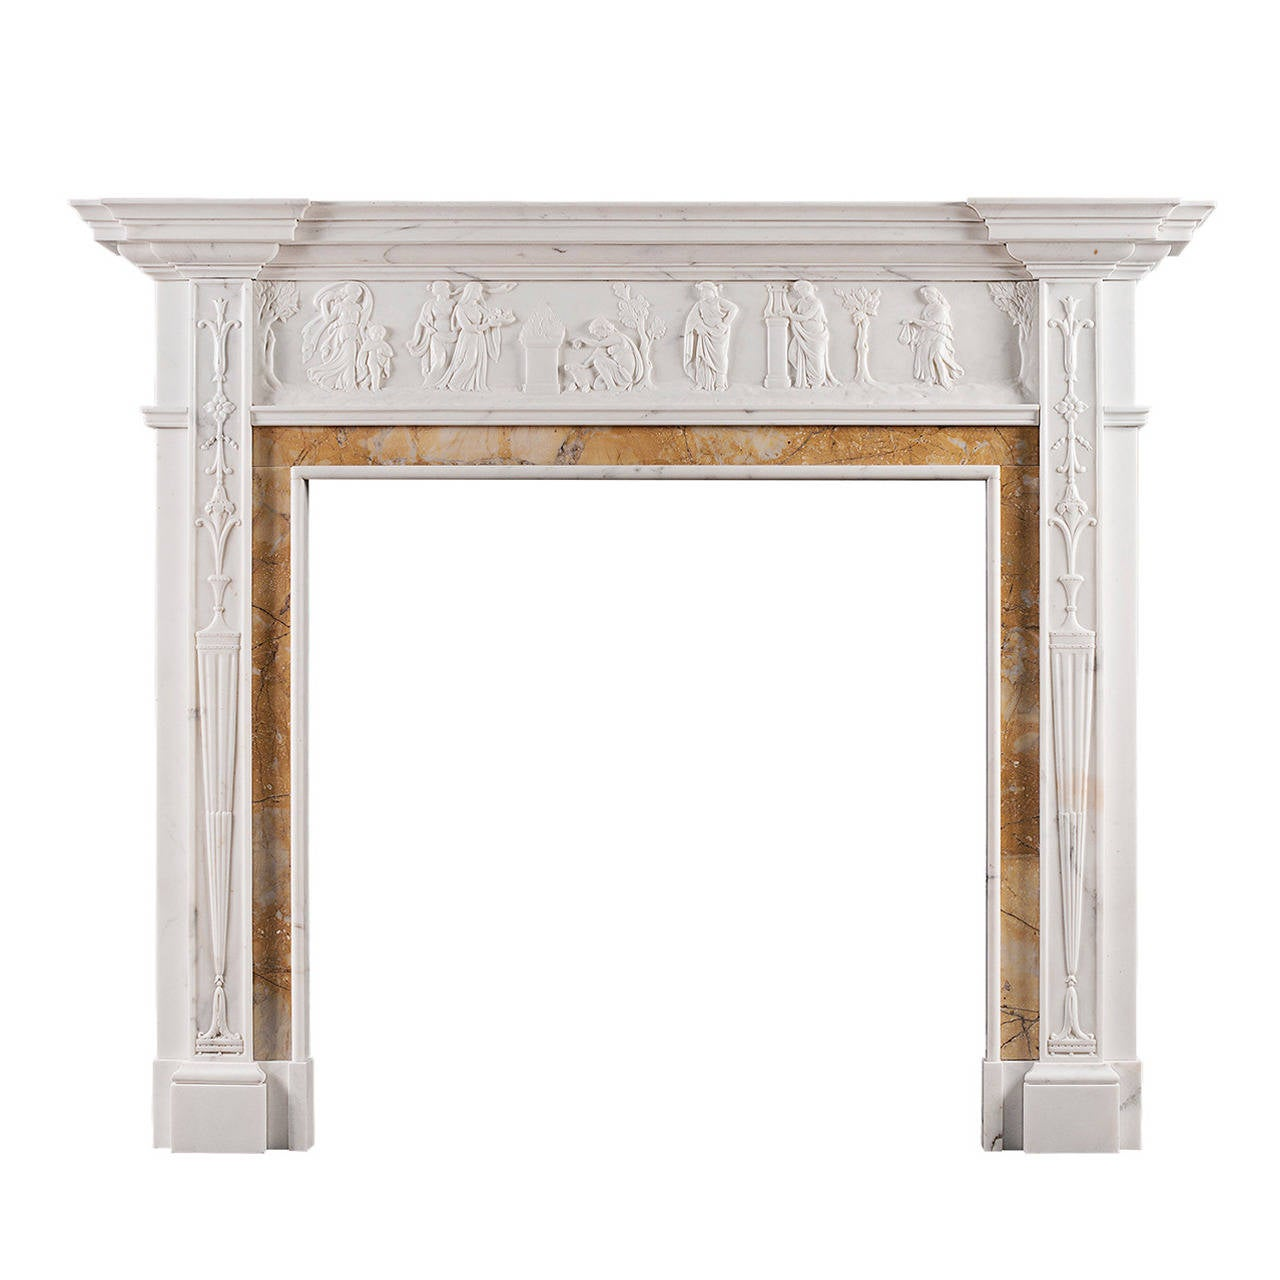 Neoclassical English Statuary Marble Fireplace Mantel with Siena Inlay